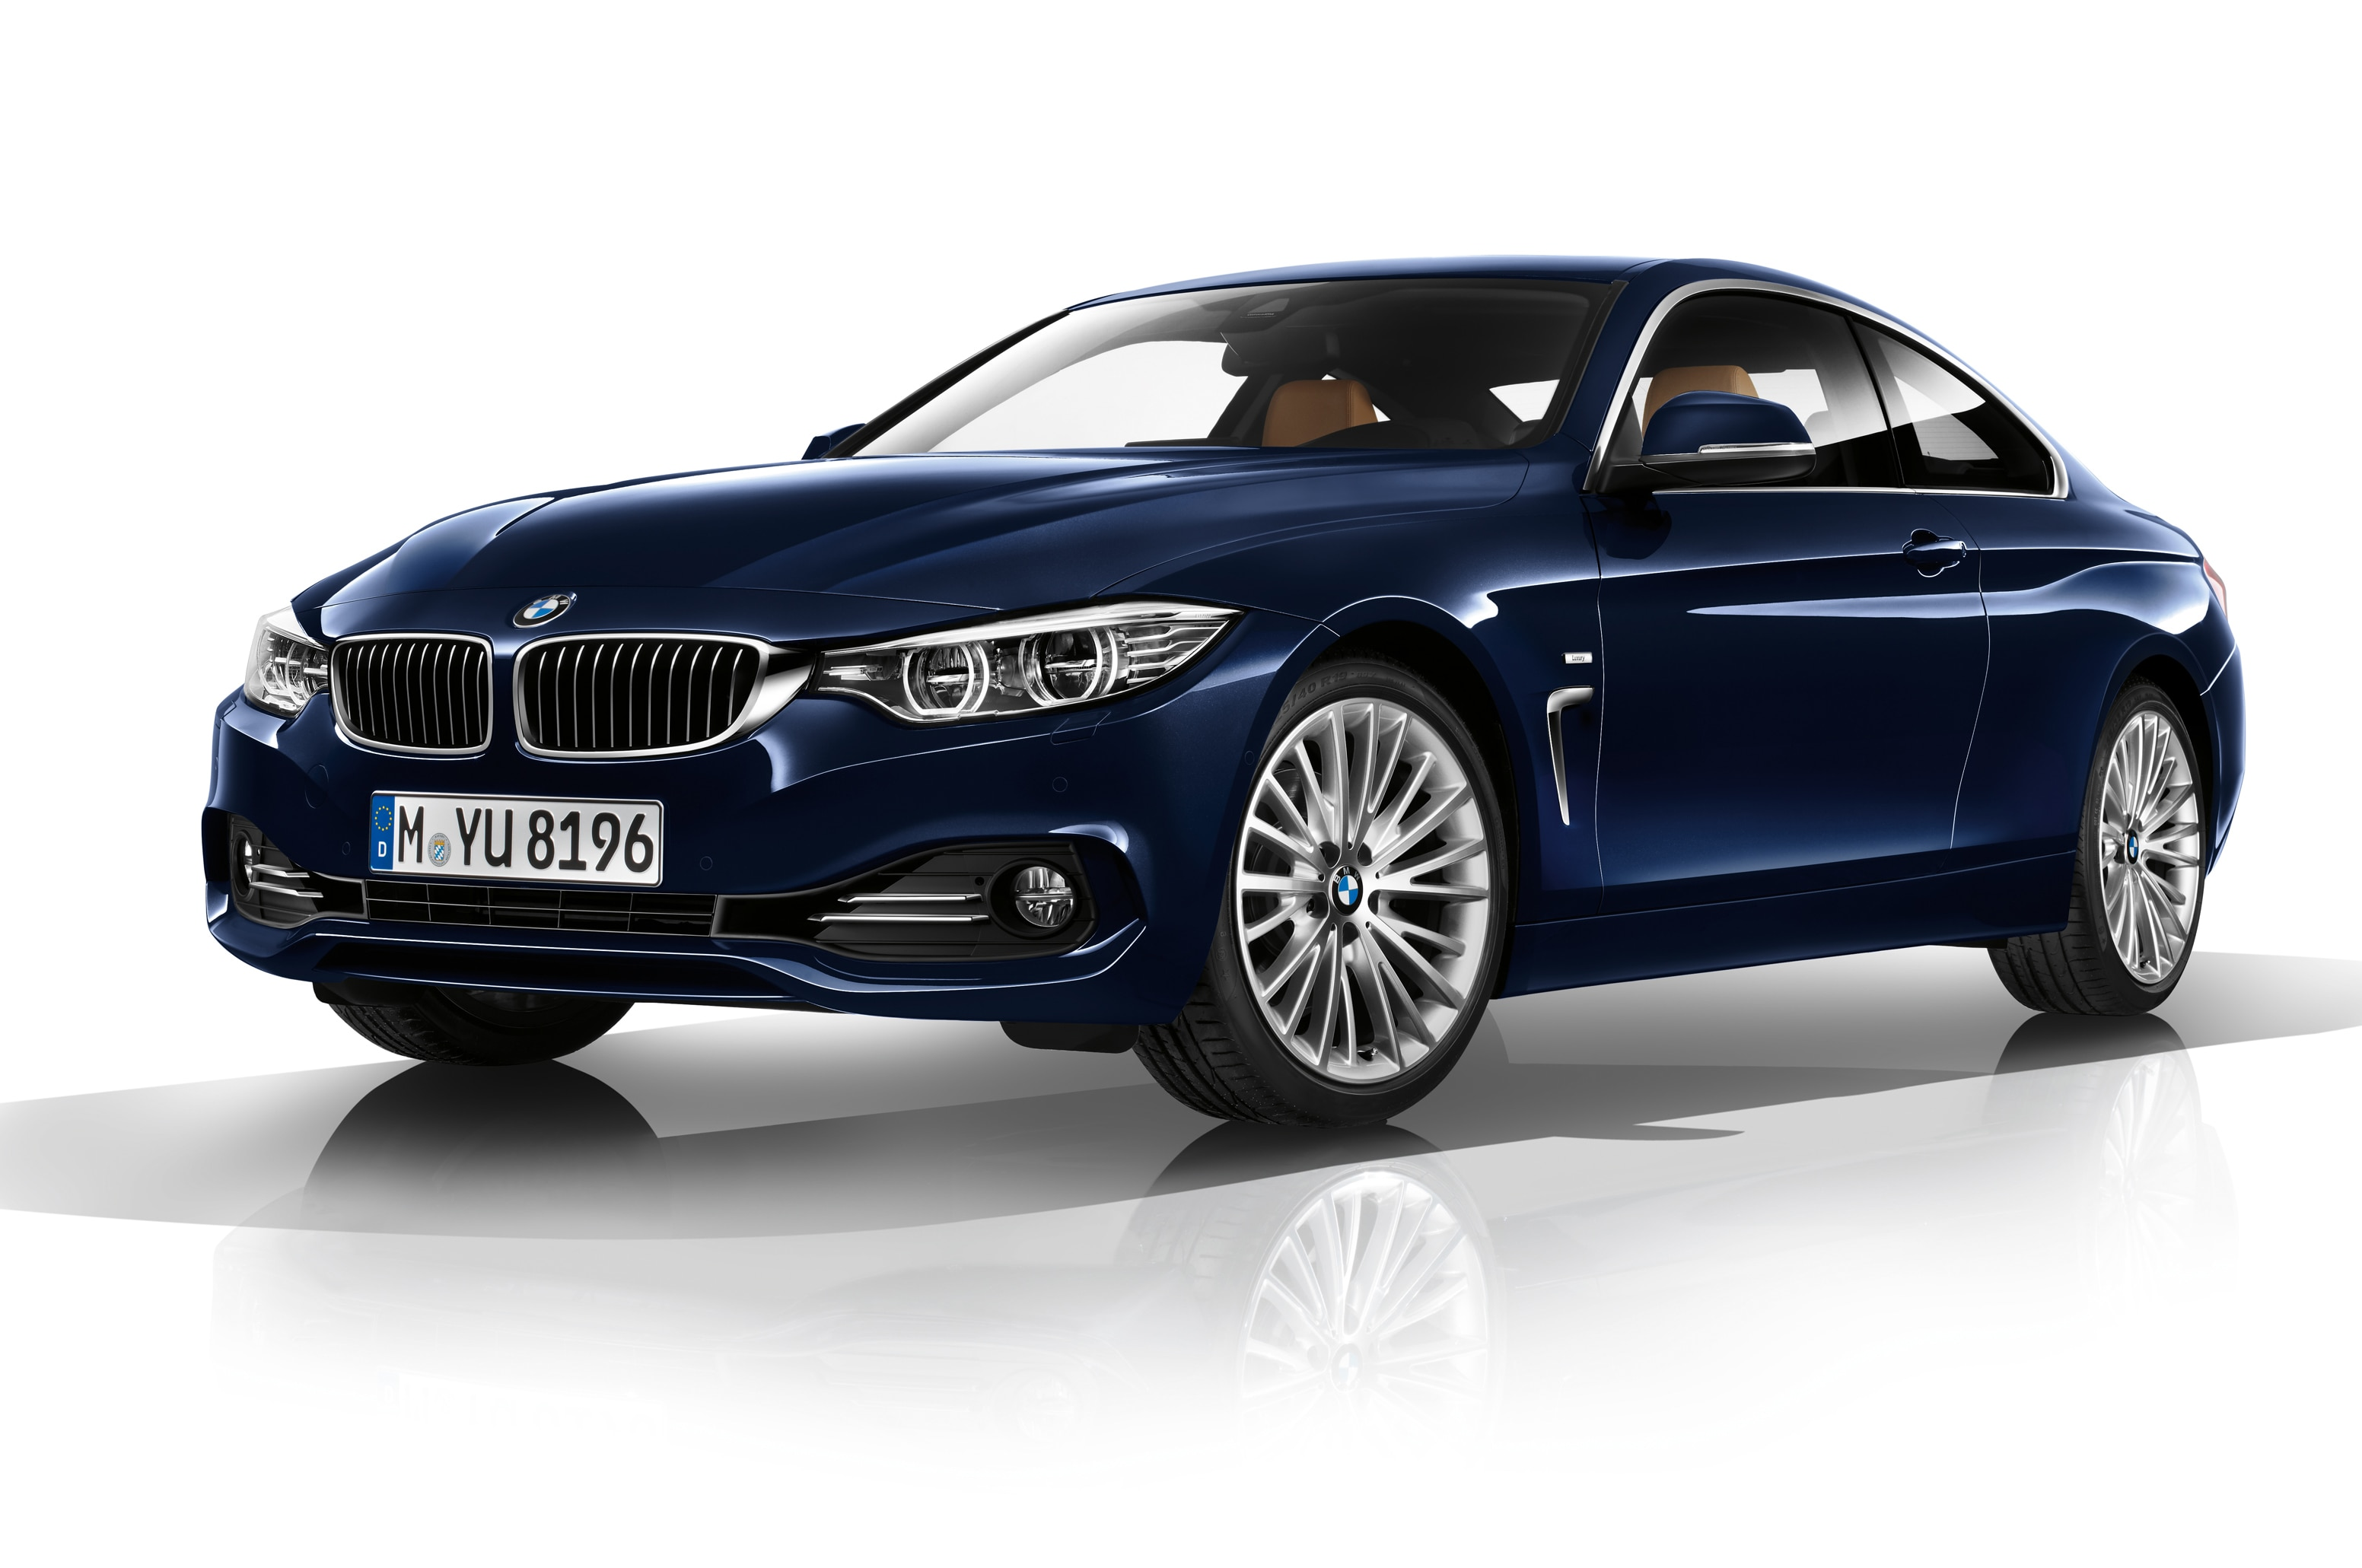 2014 Bmw 4 Series Front Three Quarters 21